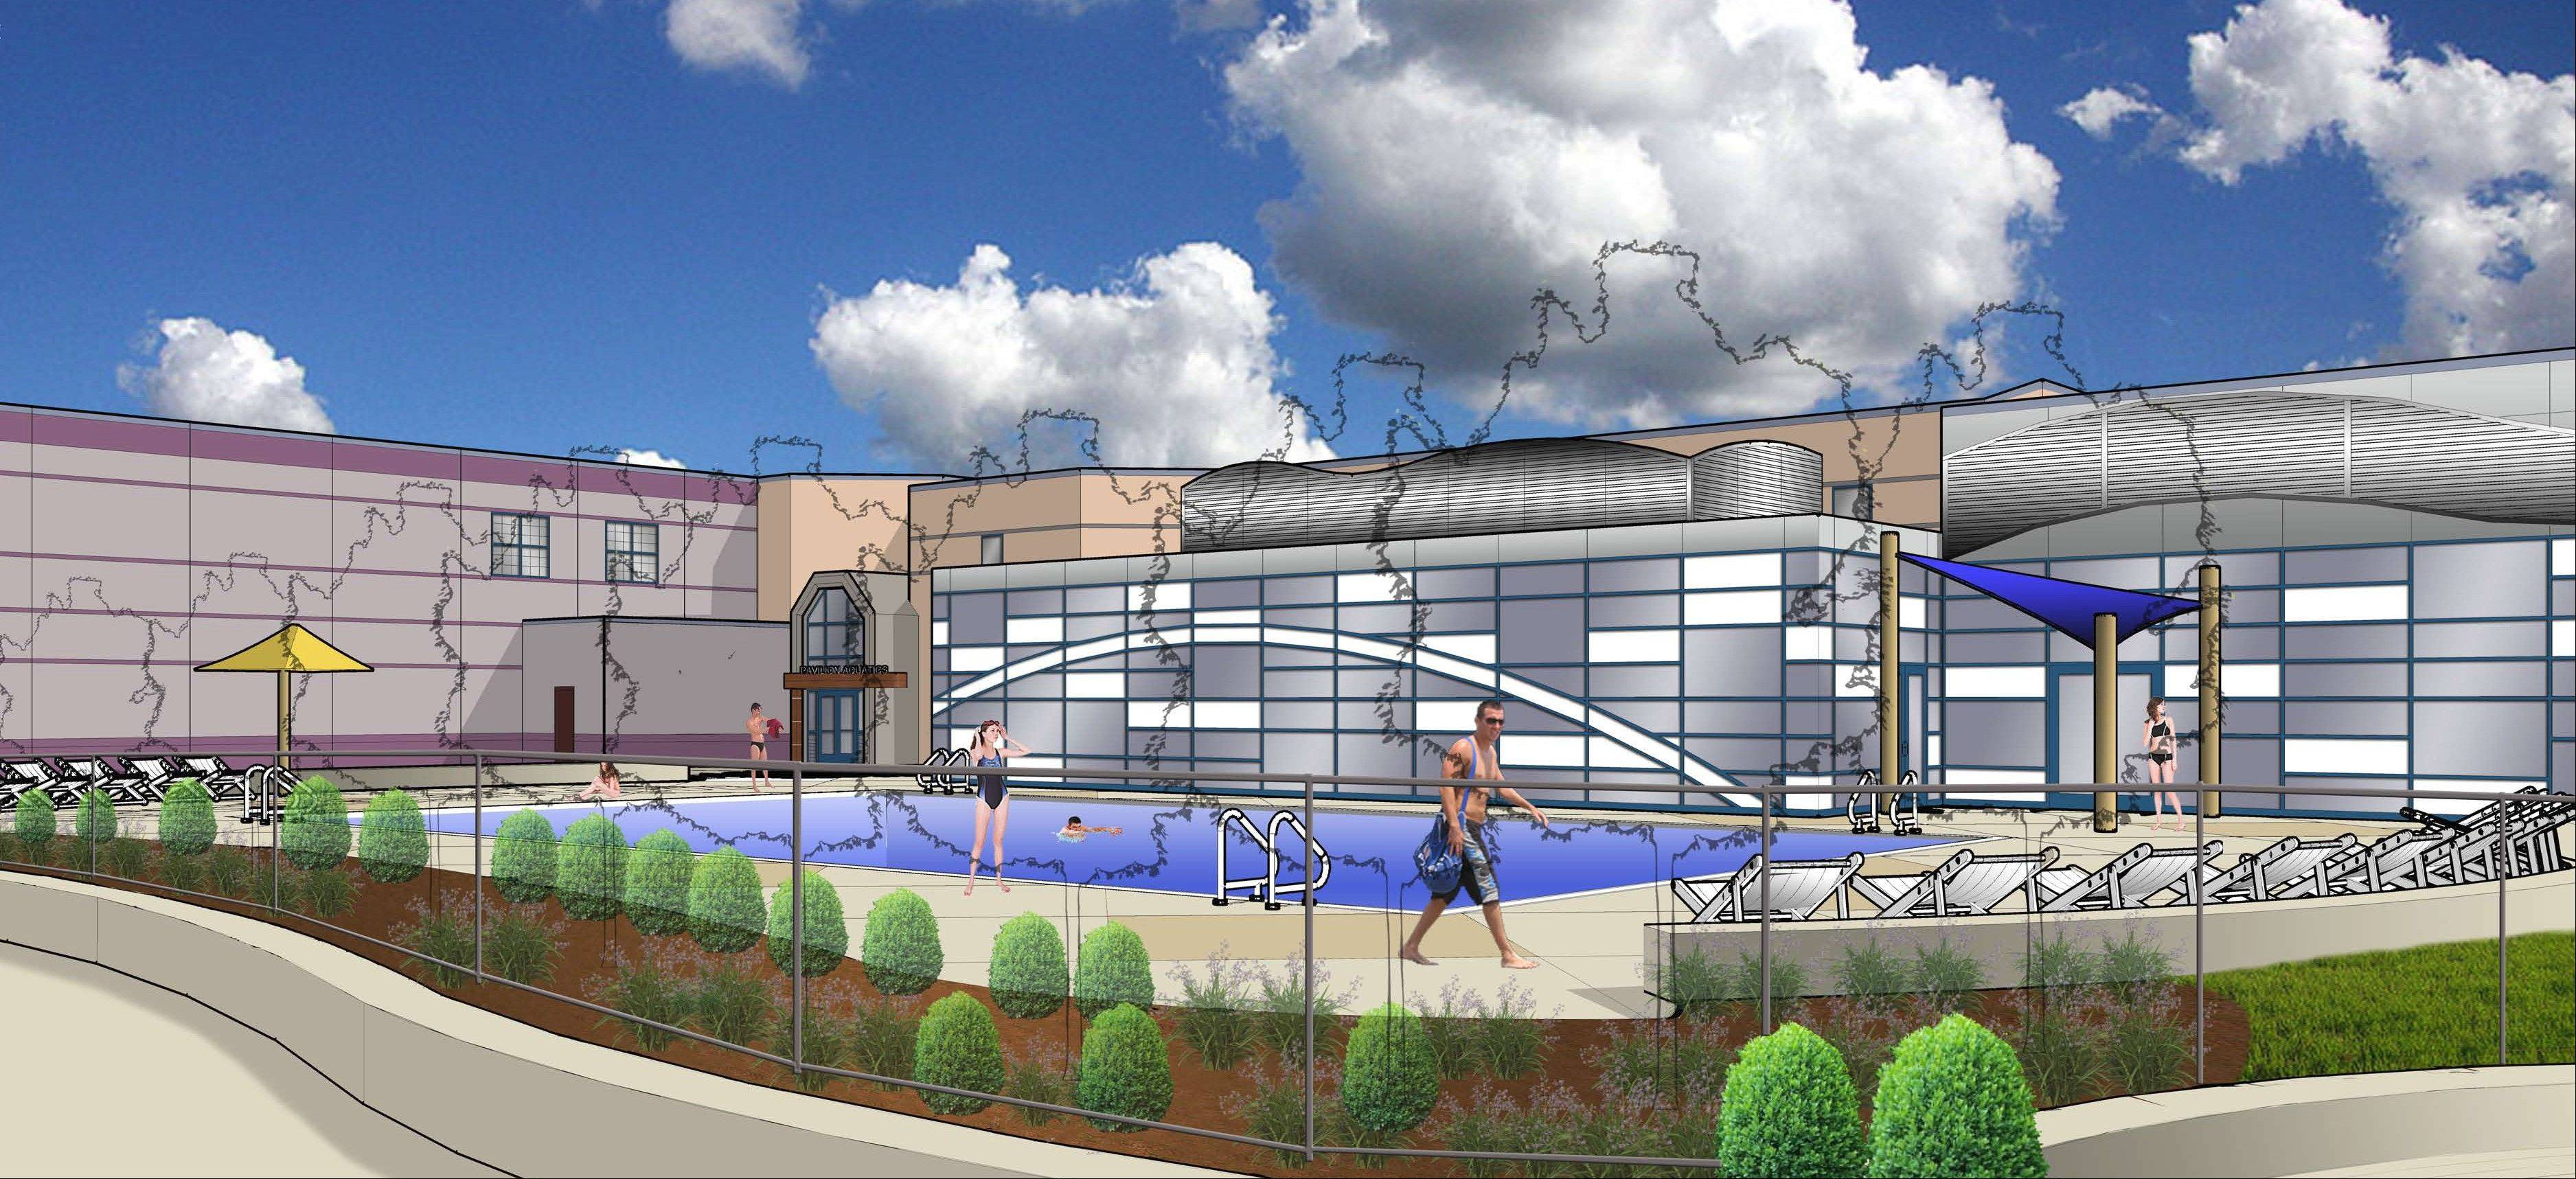 Work will begin soon on the Elk Grove Park District's planned $7 million renovation/expansion of the Pavilion Aquatic Center.